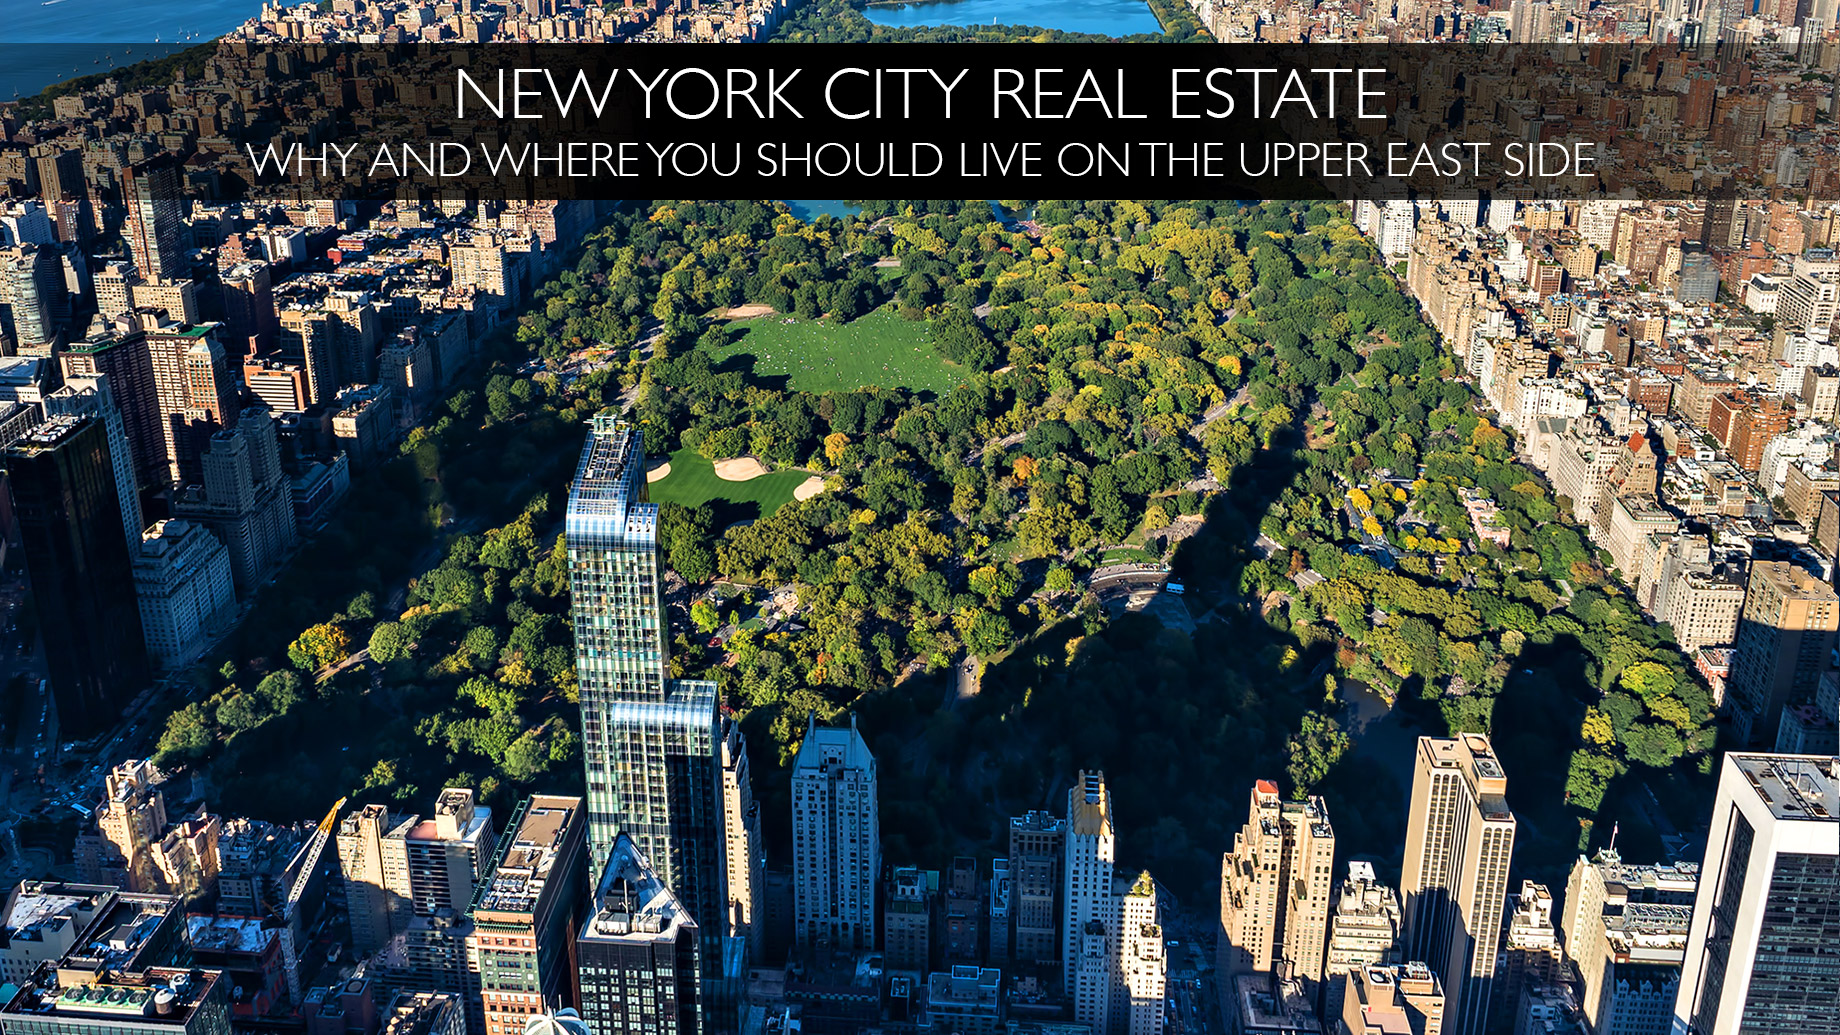 New York City Real Estate - Why and Where You Should Live on the Upper East Side